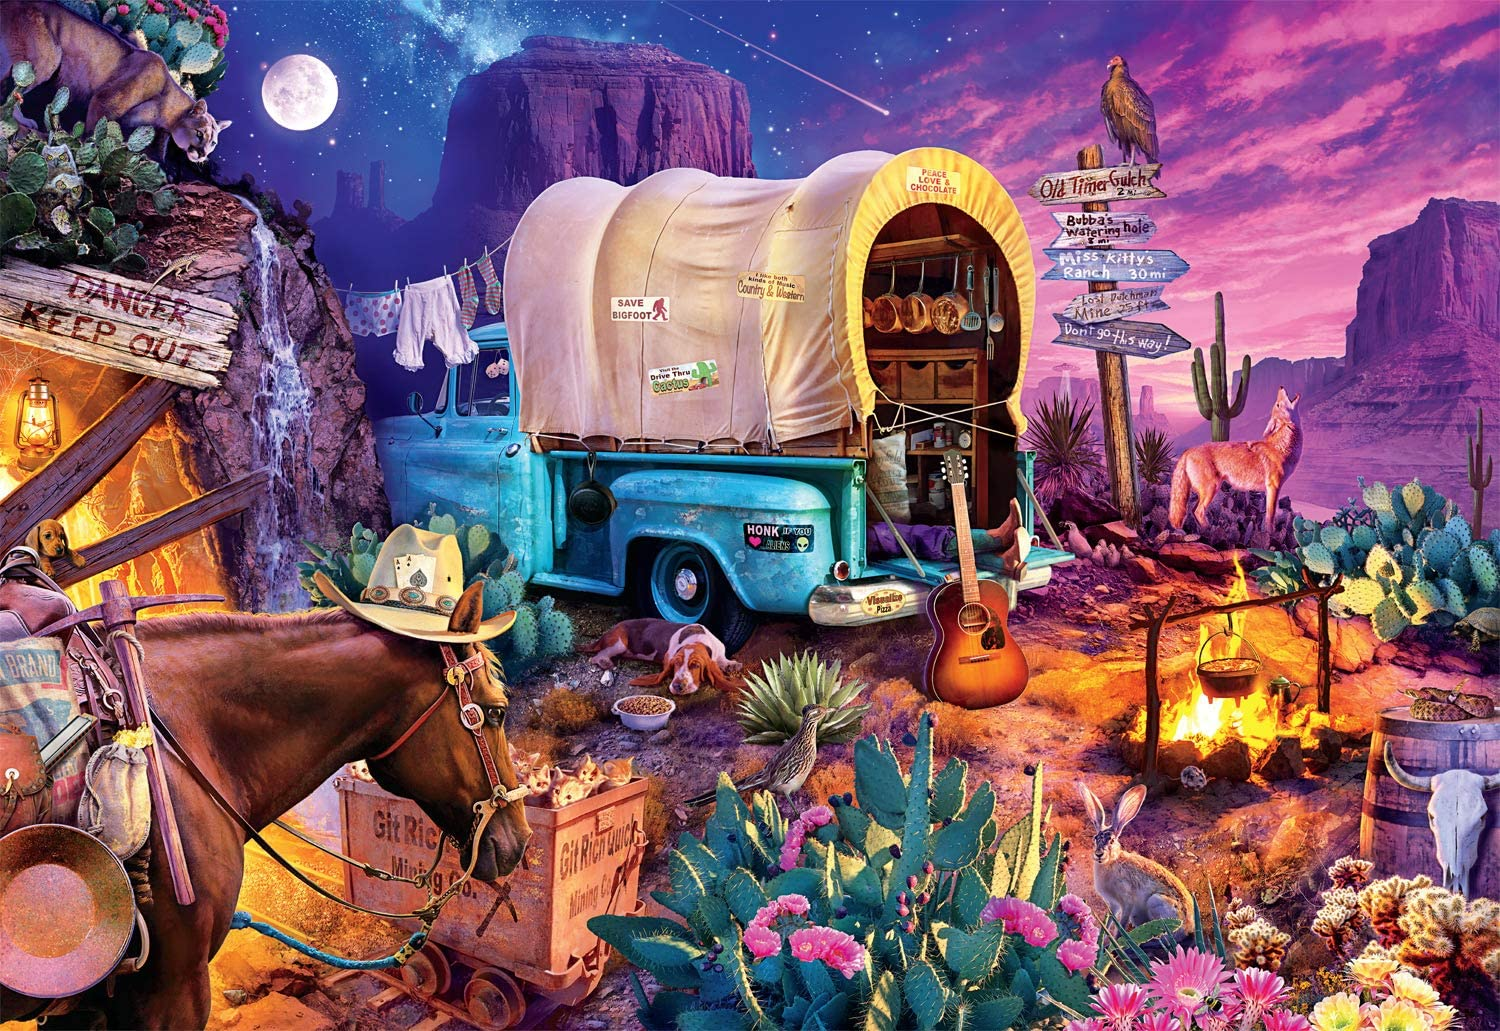 Buffalo Games - Wild West Camp with H Piece service Jigsaw 2000 Puzzle half